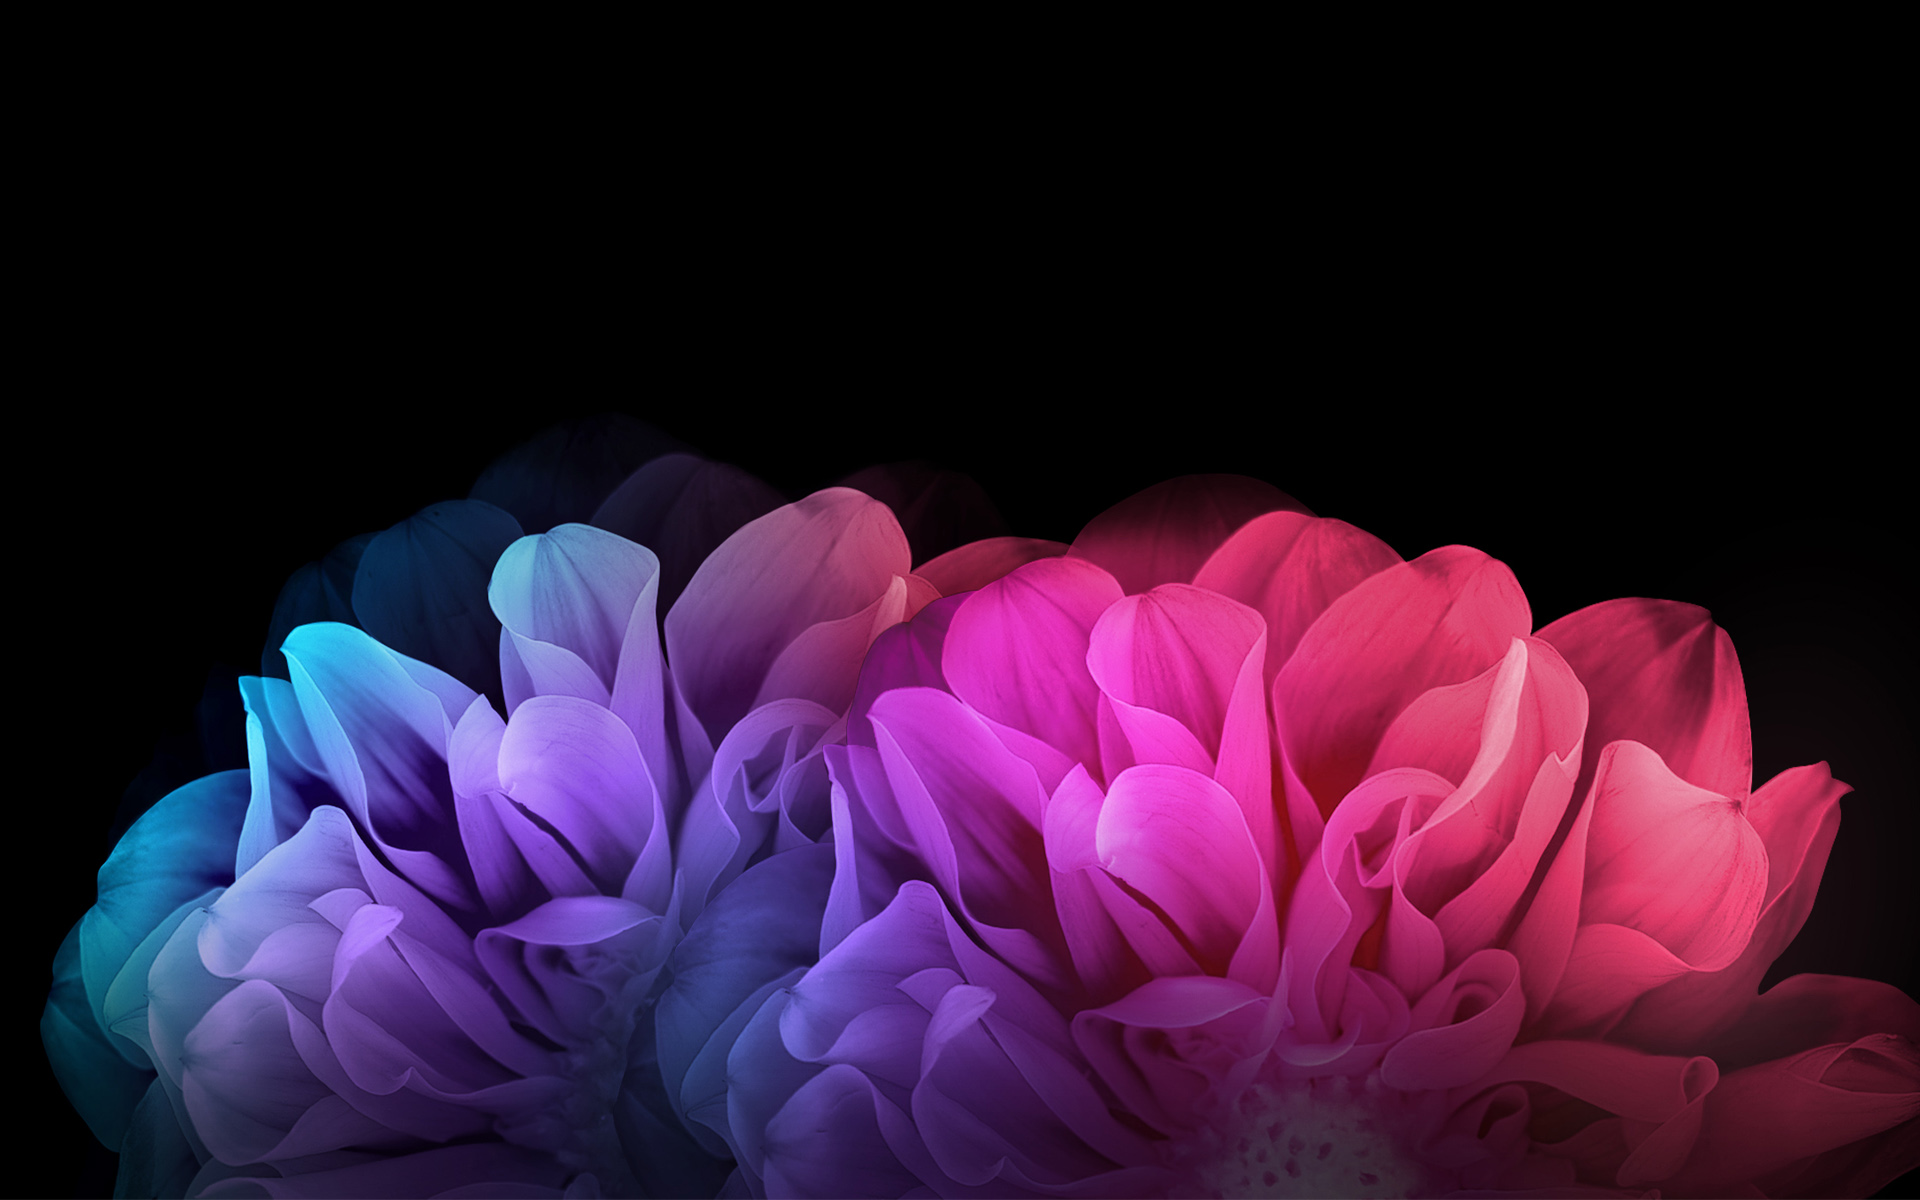 Colorful Flowers Dark Background951169959 - Colorful Flowers Dark Background - Flowers, Dark, Colorful, Background